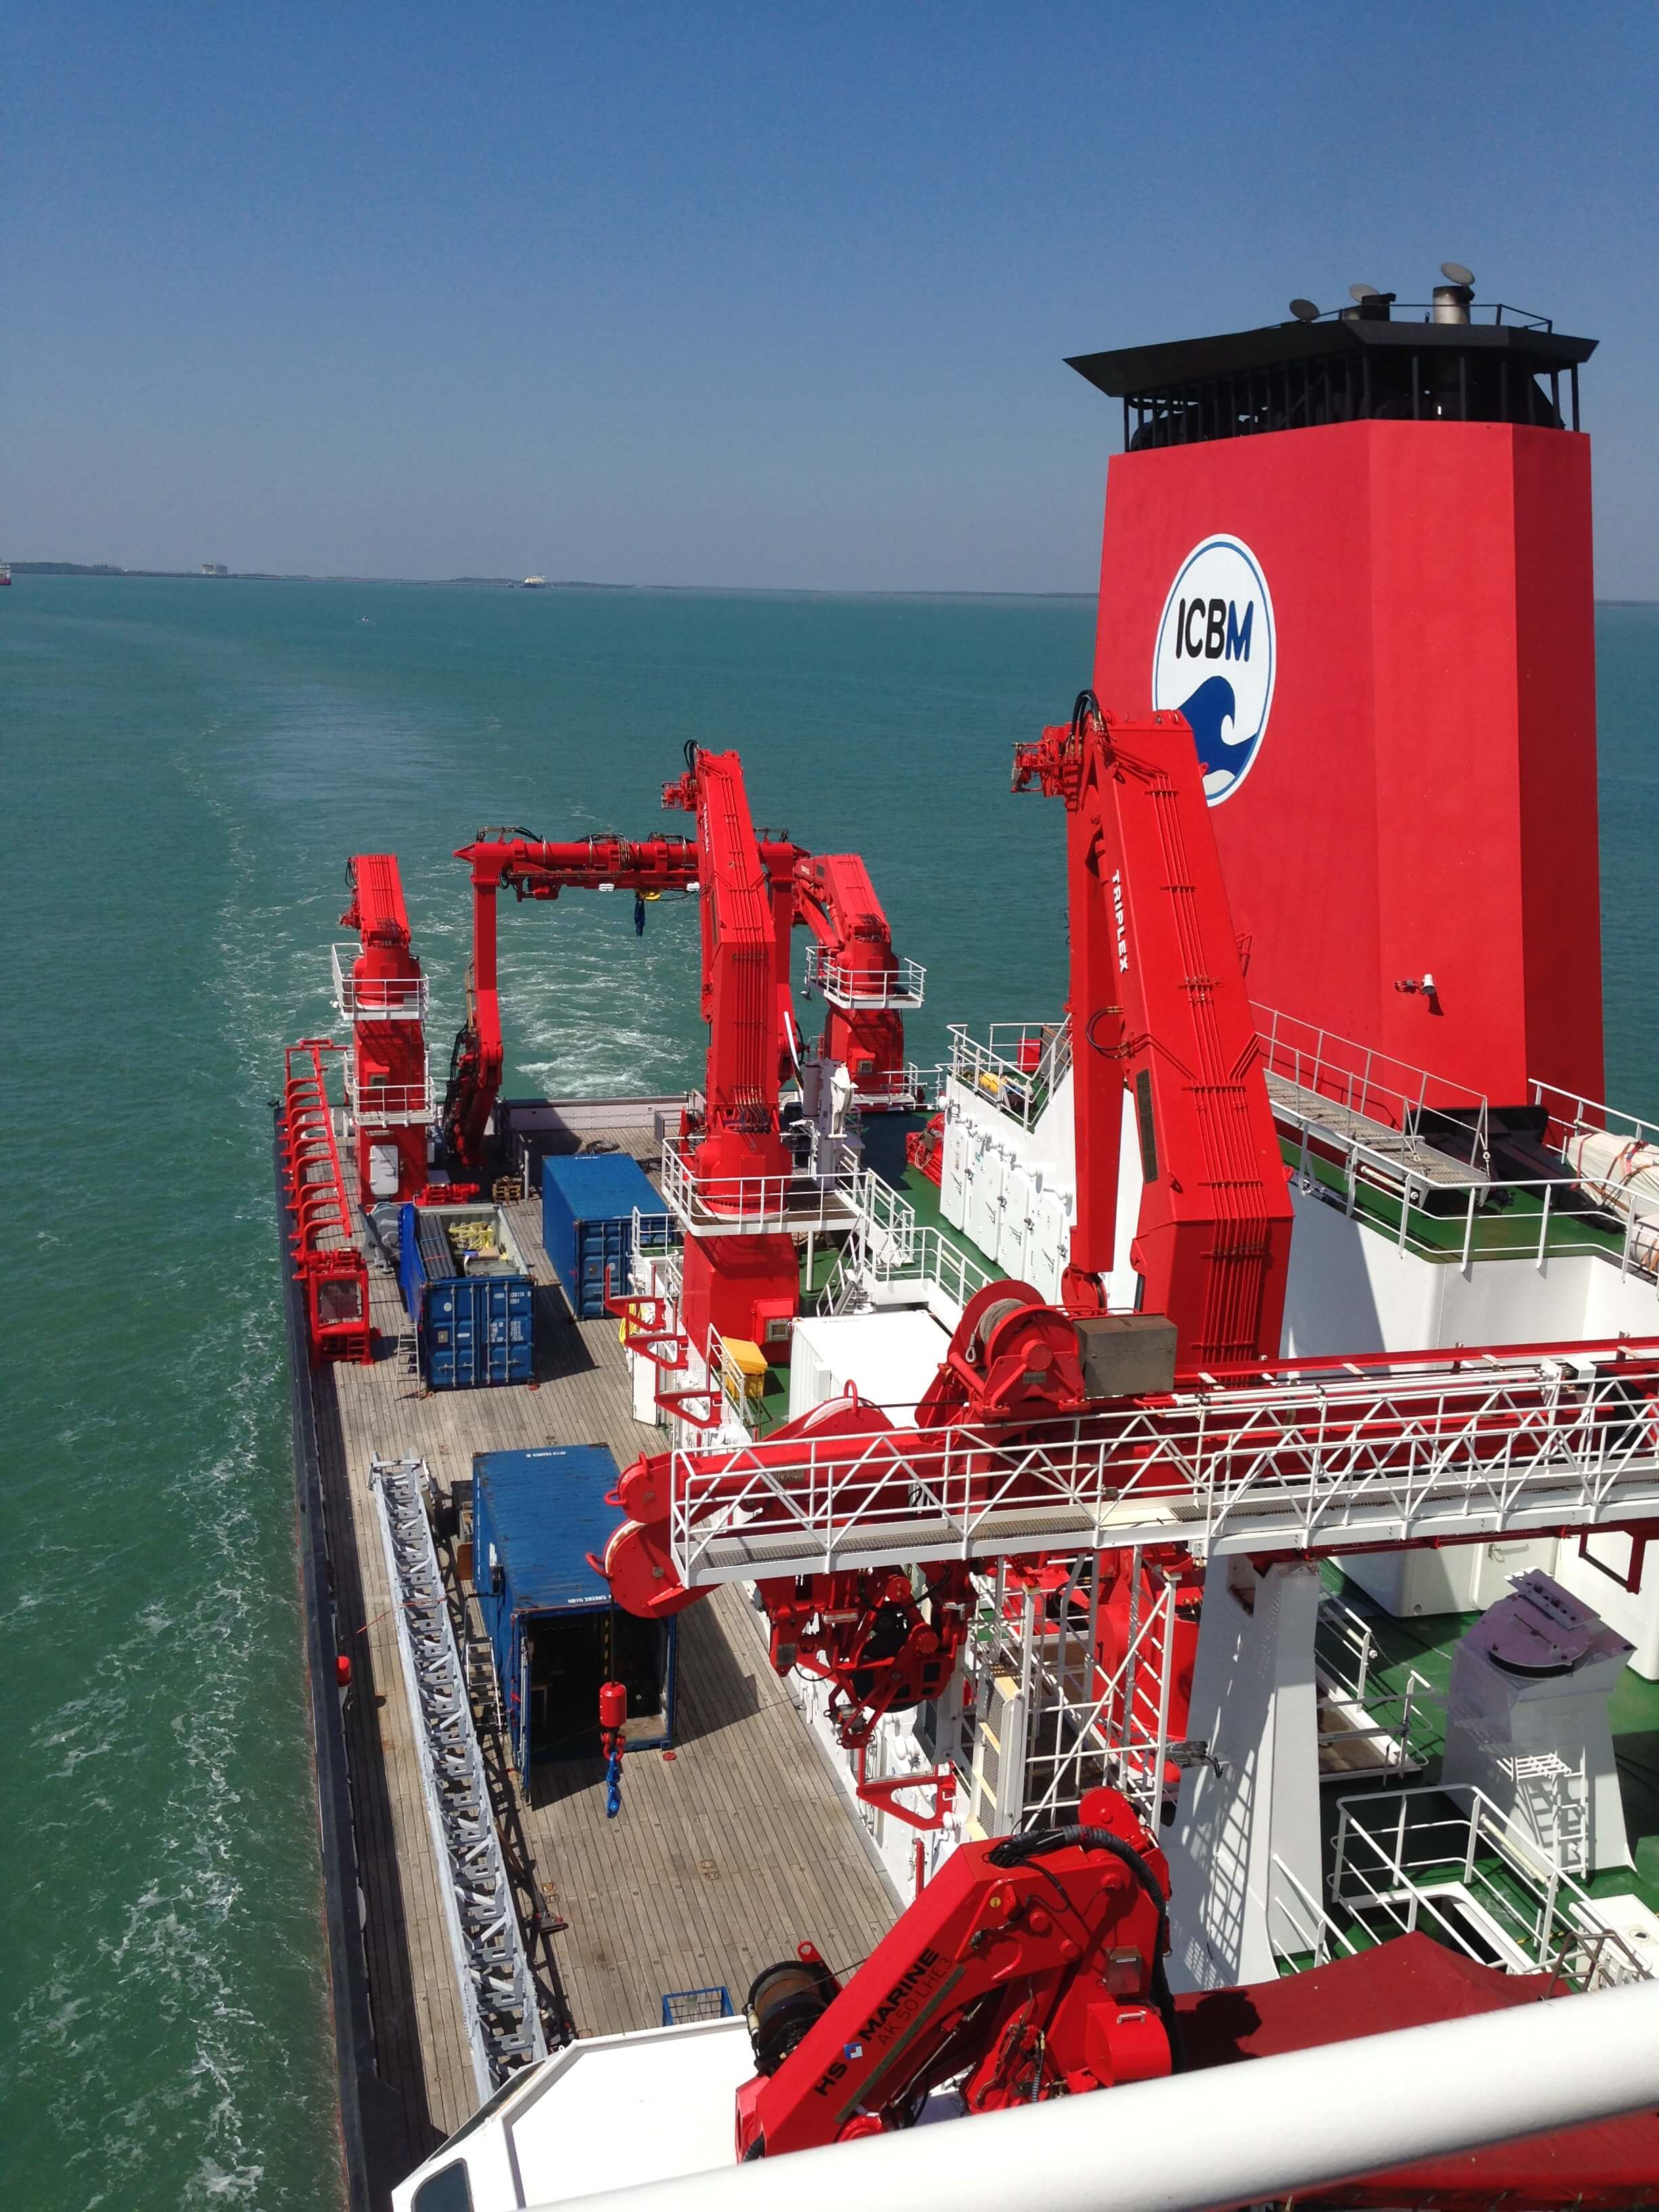 A large ship with numerous red cranes, with the logo